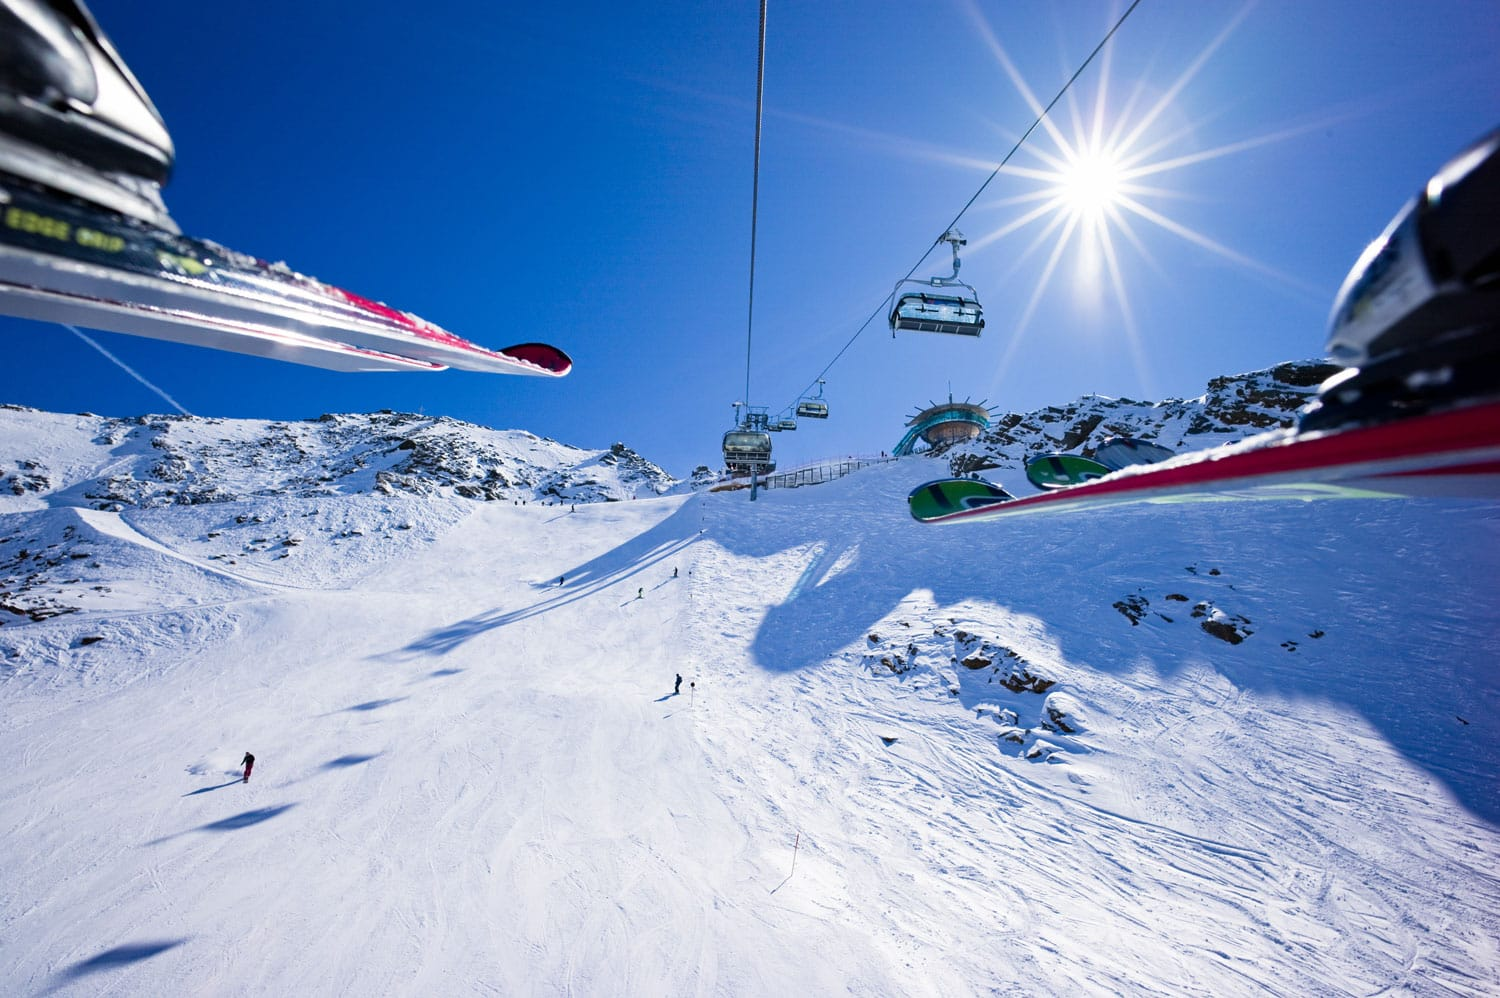 People are riding in chair lift in a ski area. Obergurgl, Austri